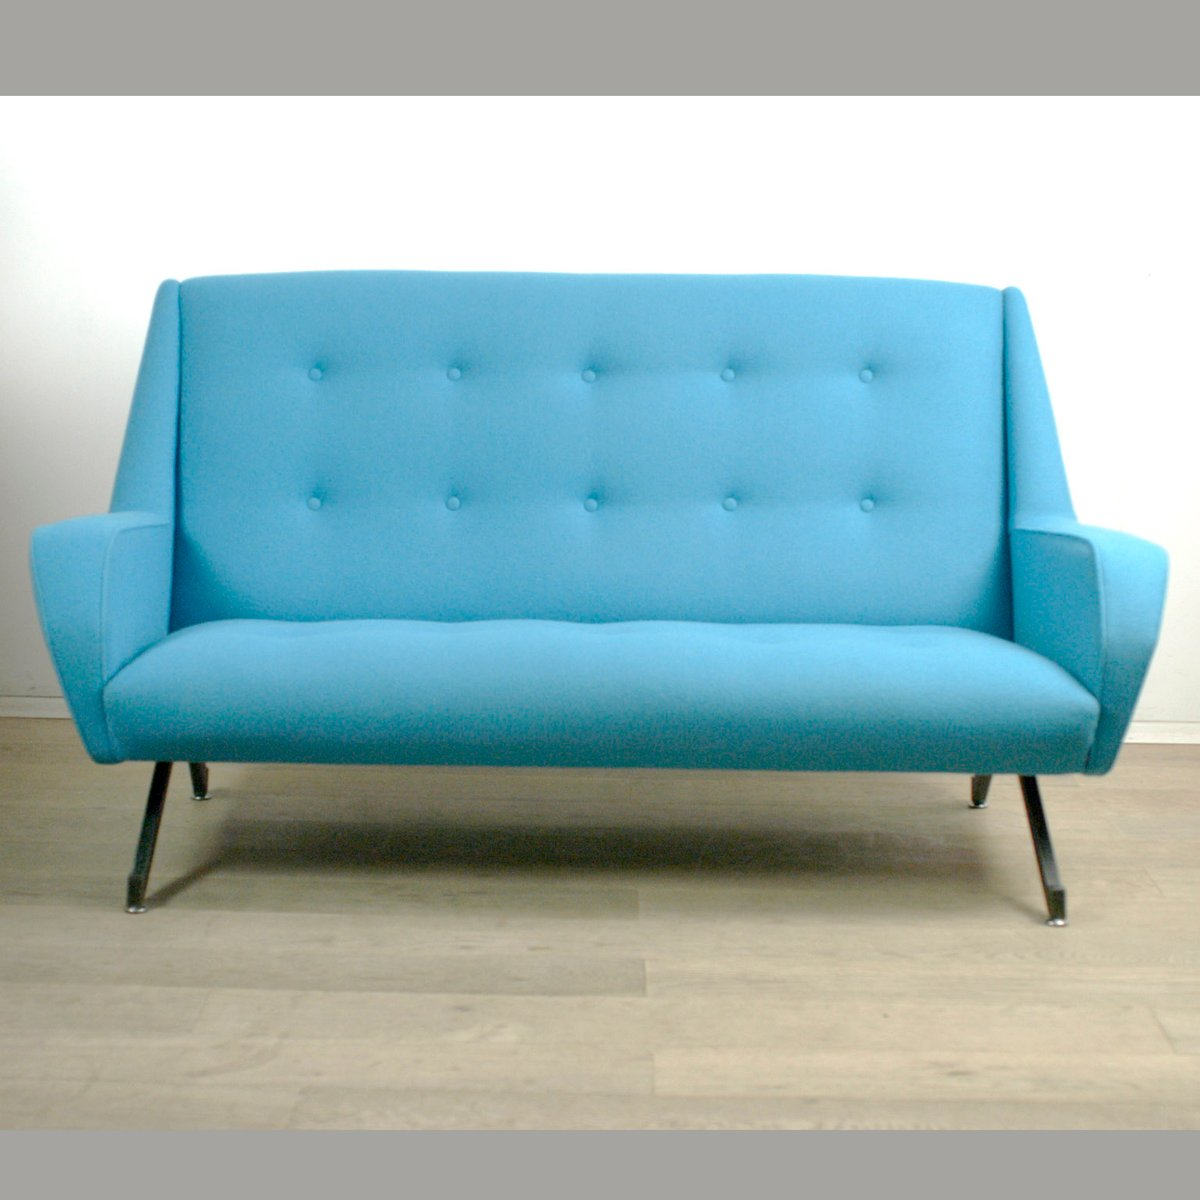 Turquoise italian two seater sofa 1950s for sale at pamono for Sofa 7 seater